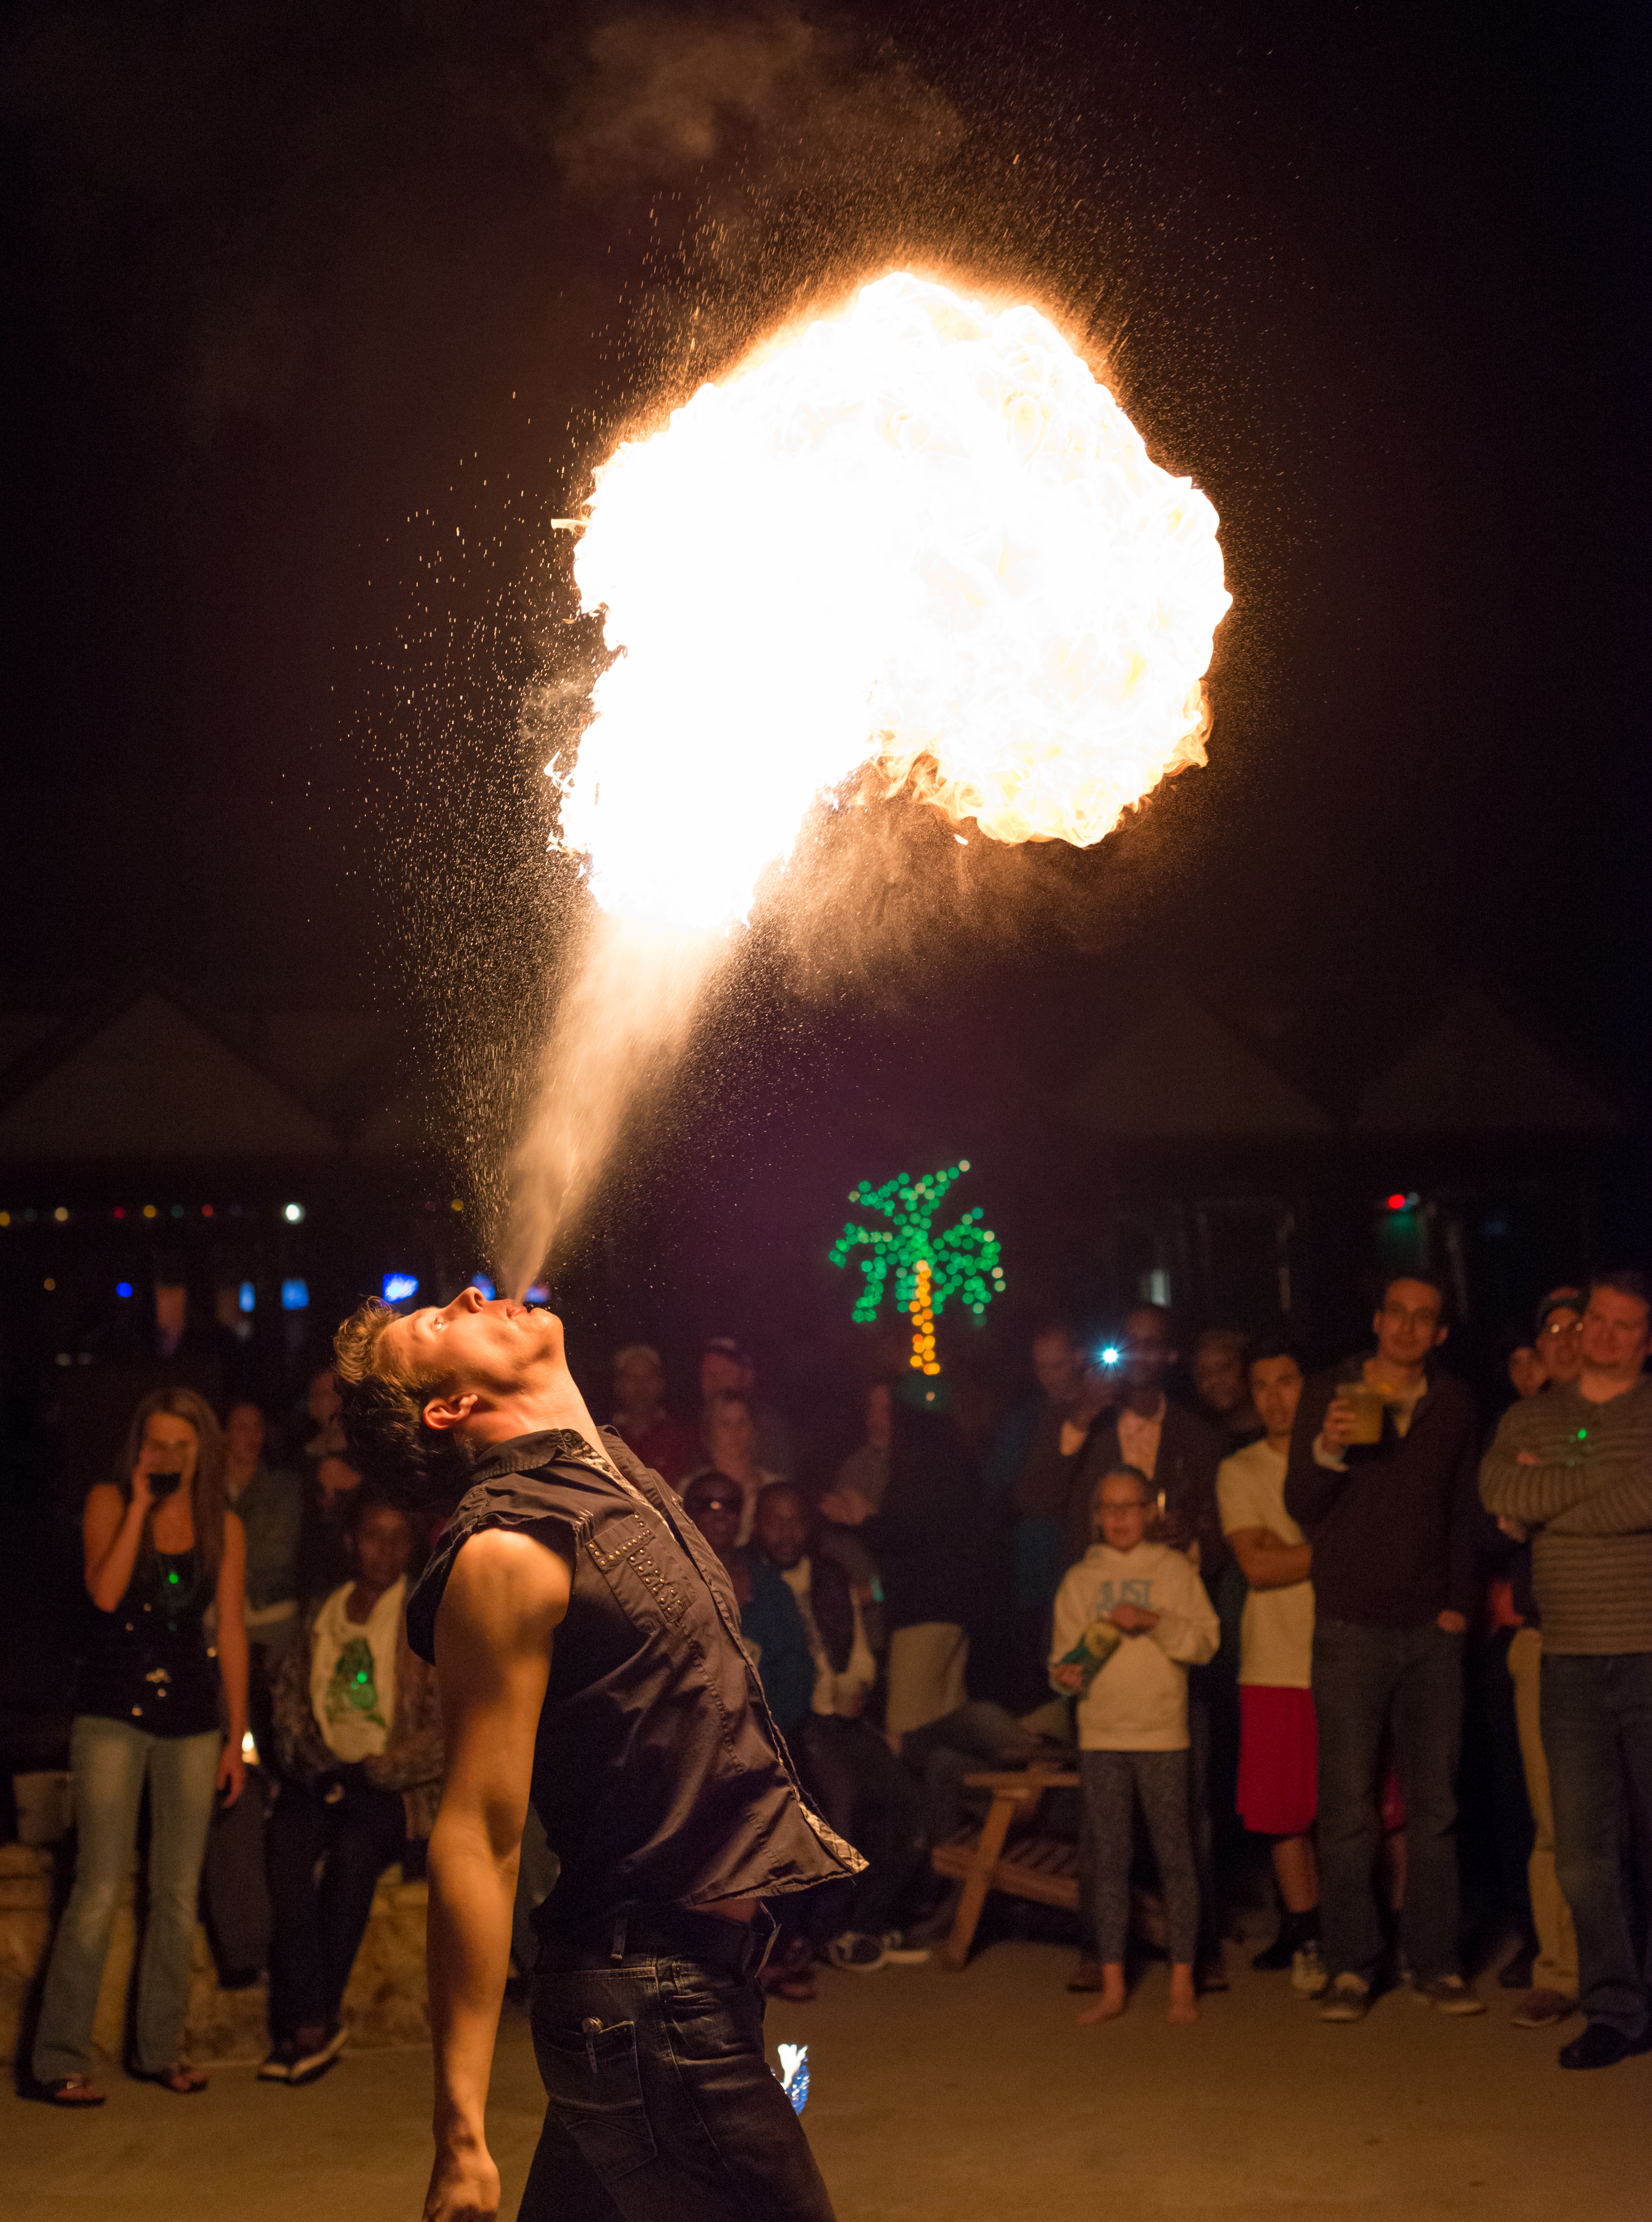 Firebreather Lights Up the Night at Lanier Islands Full Moon Party